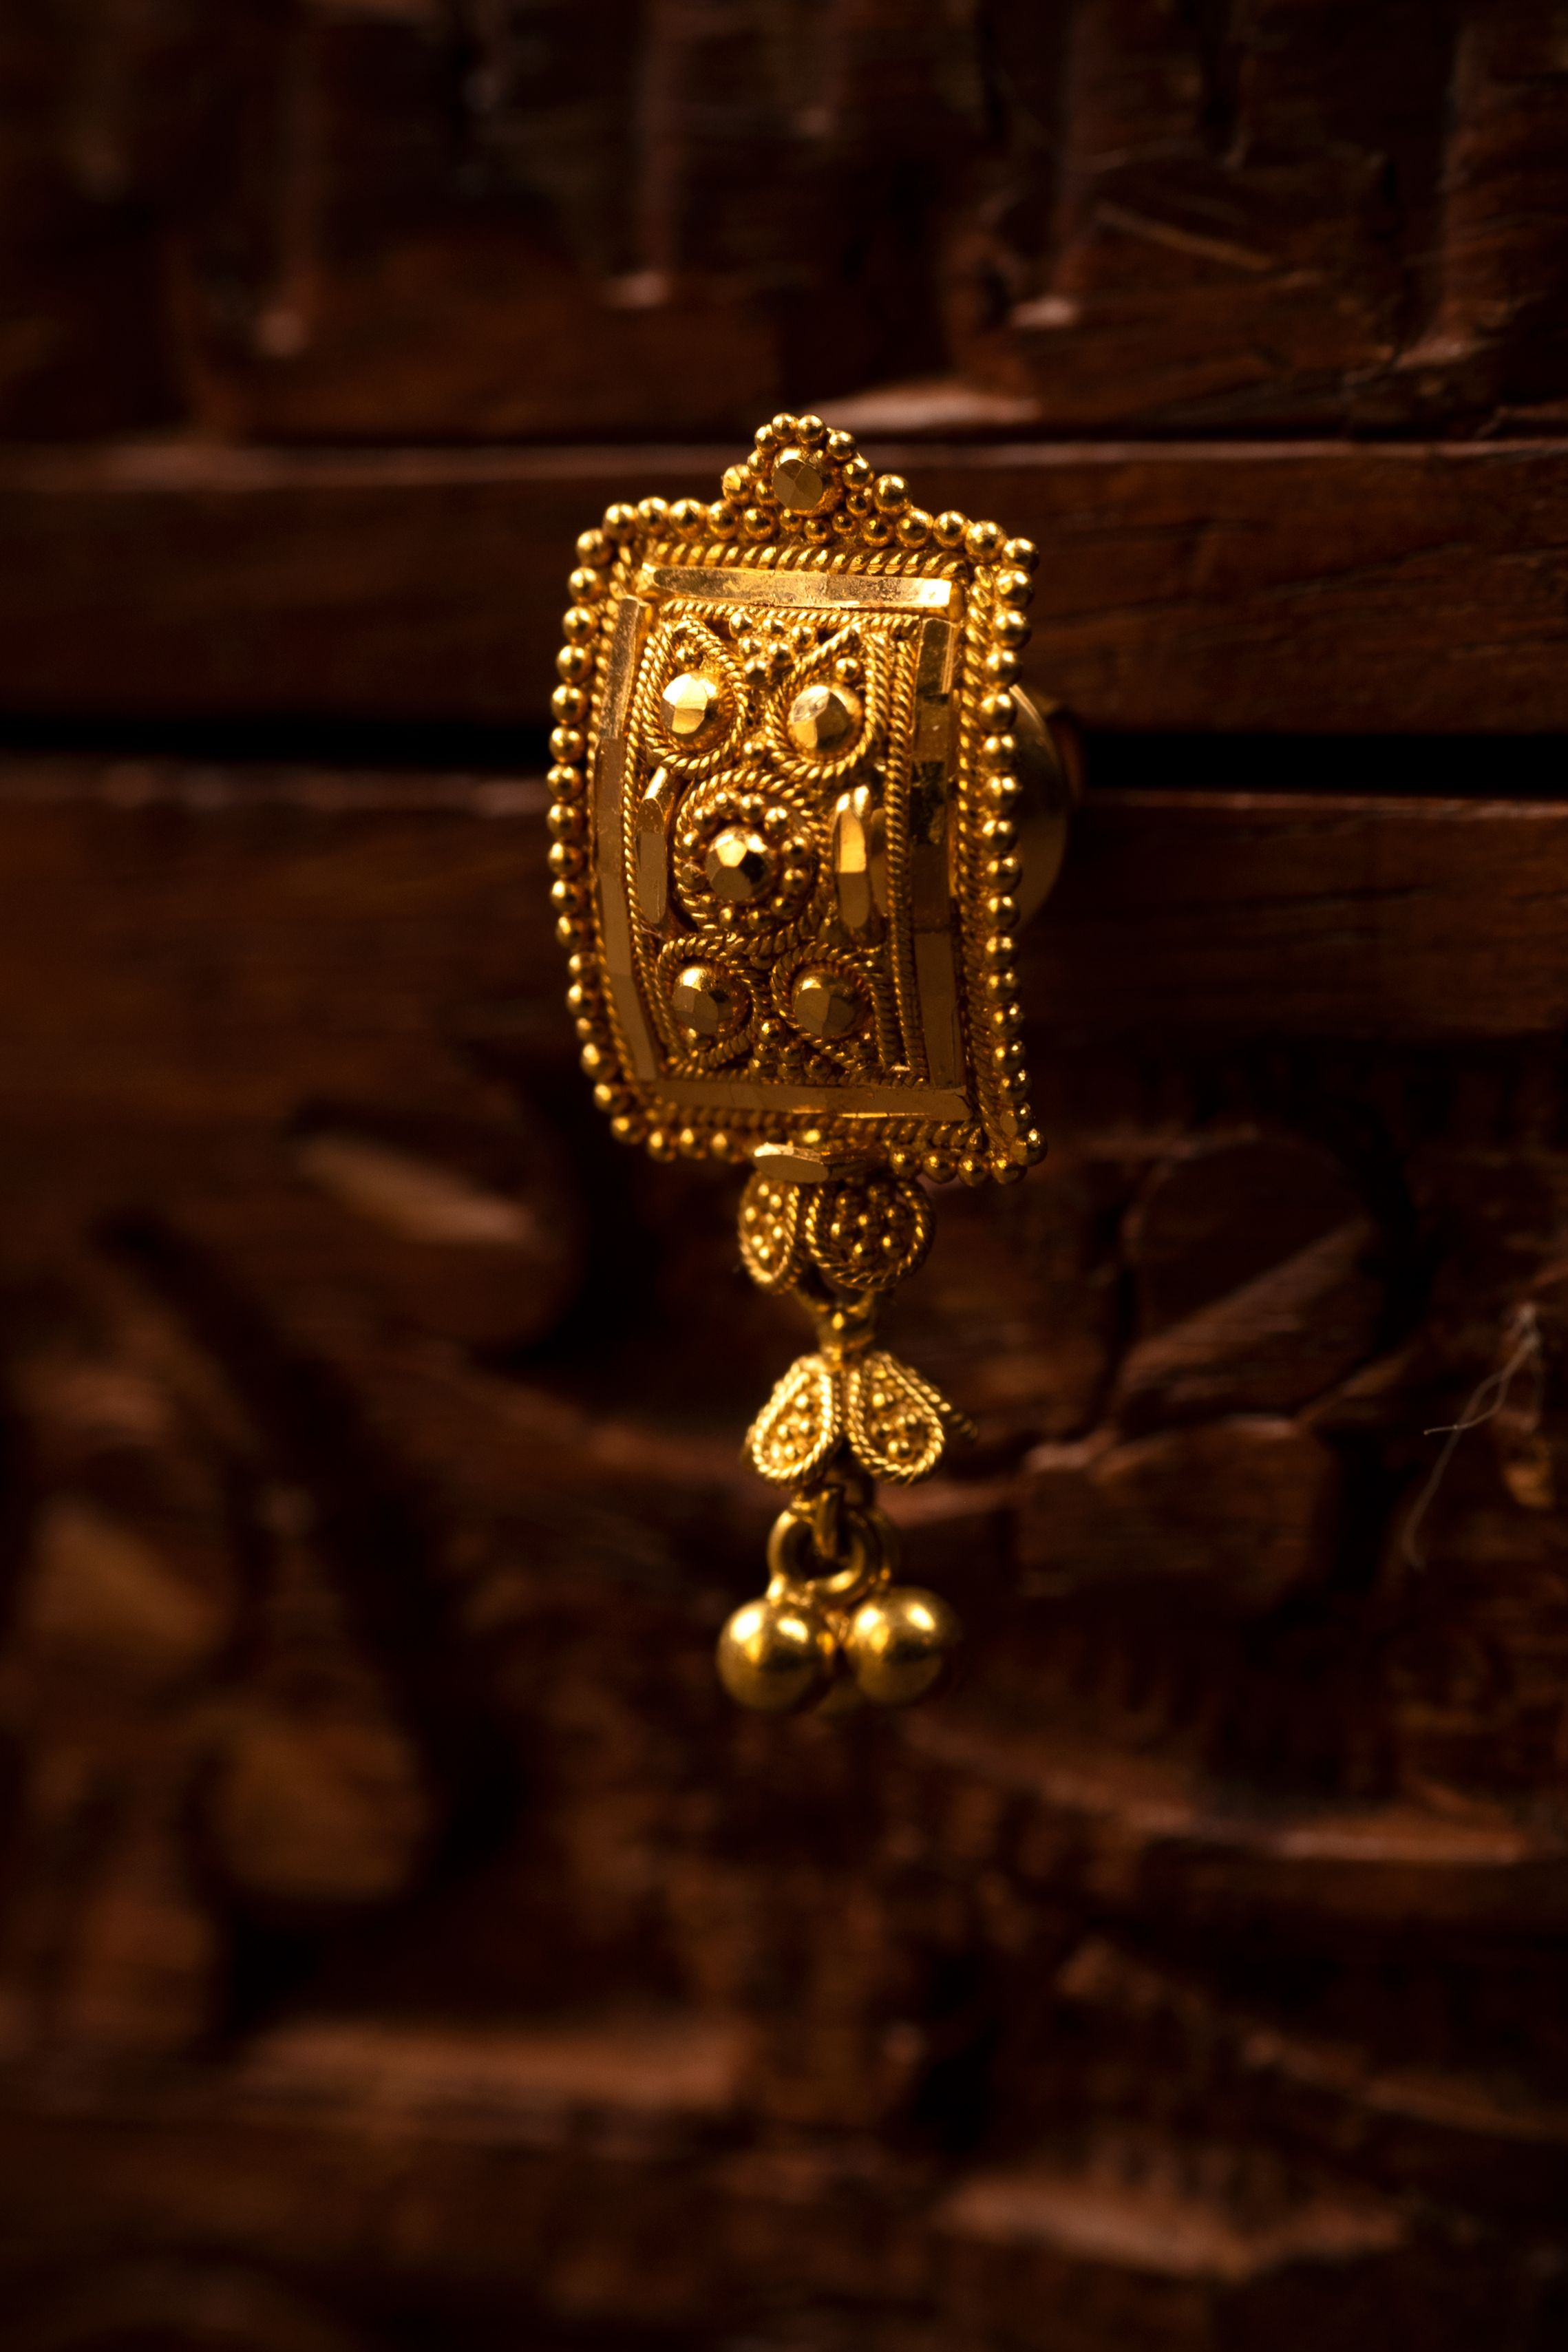 Gold earring | Gold earrings, Jewelry, Jewelry photography